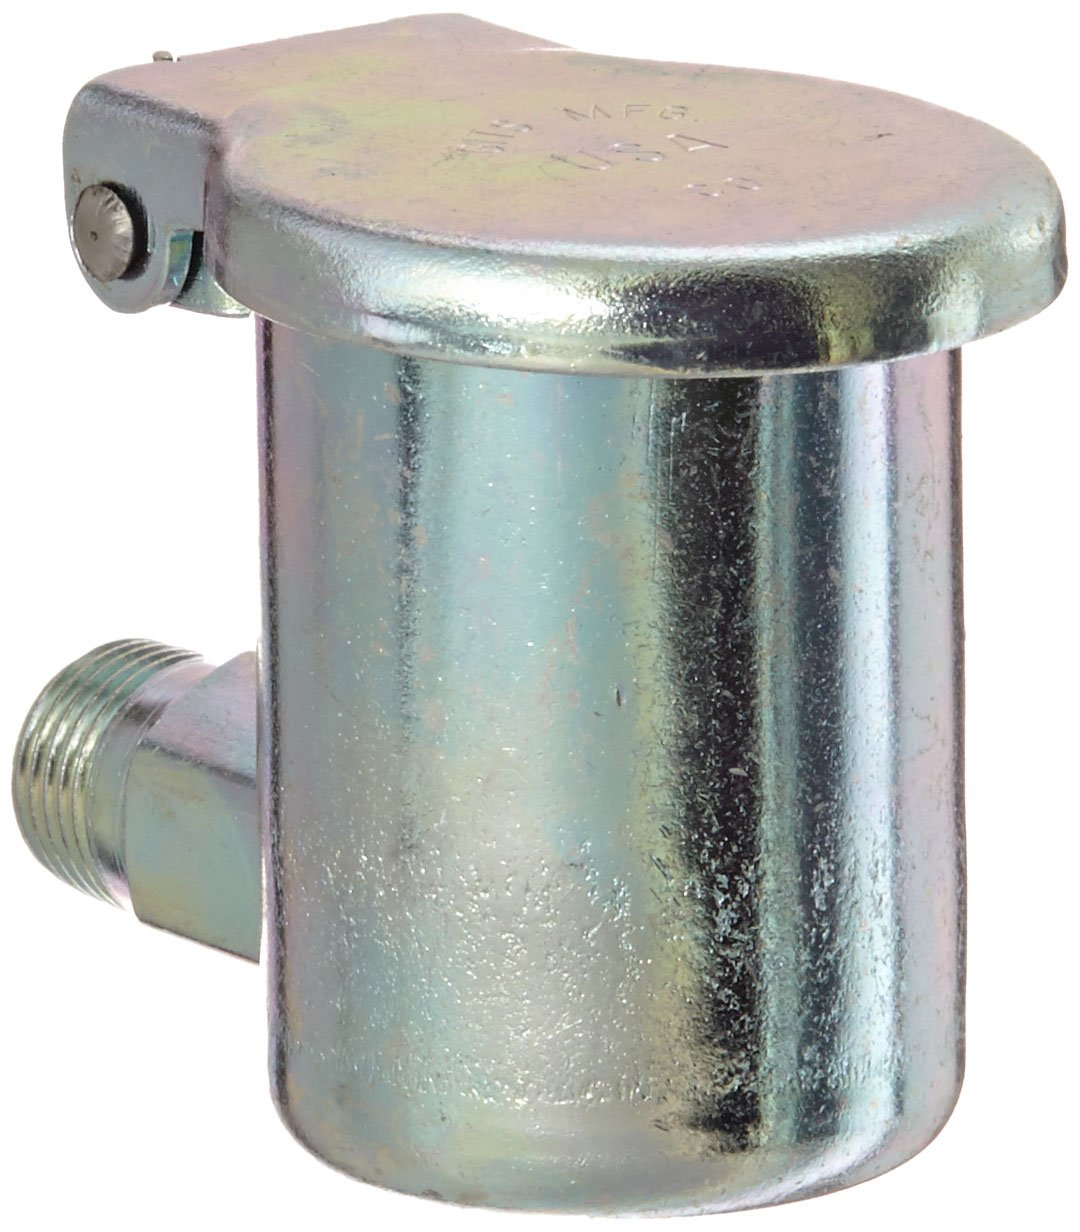 Gits 00803 Oil Hole Covers and Cup, Style Y Elbow, 1/8''- 27 Male NPT, 1-7/16 Overall Height, 2-5/8 Assembly Clearance